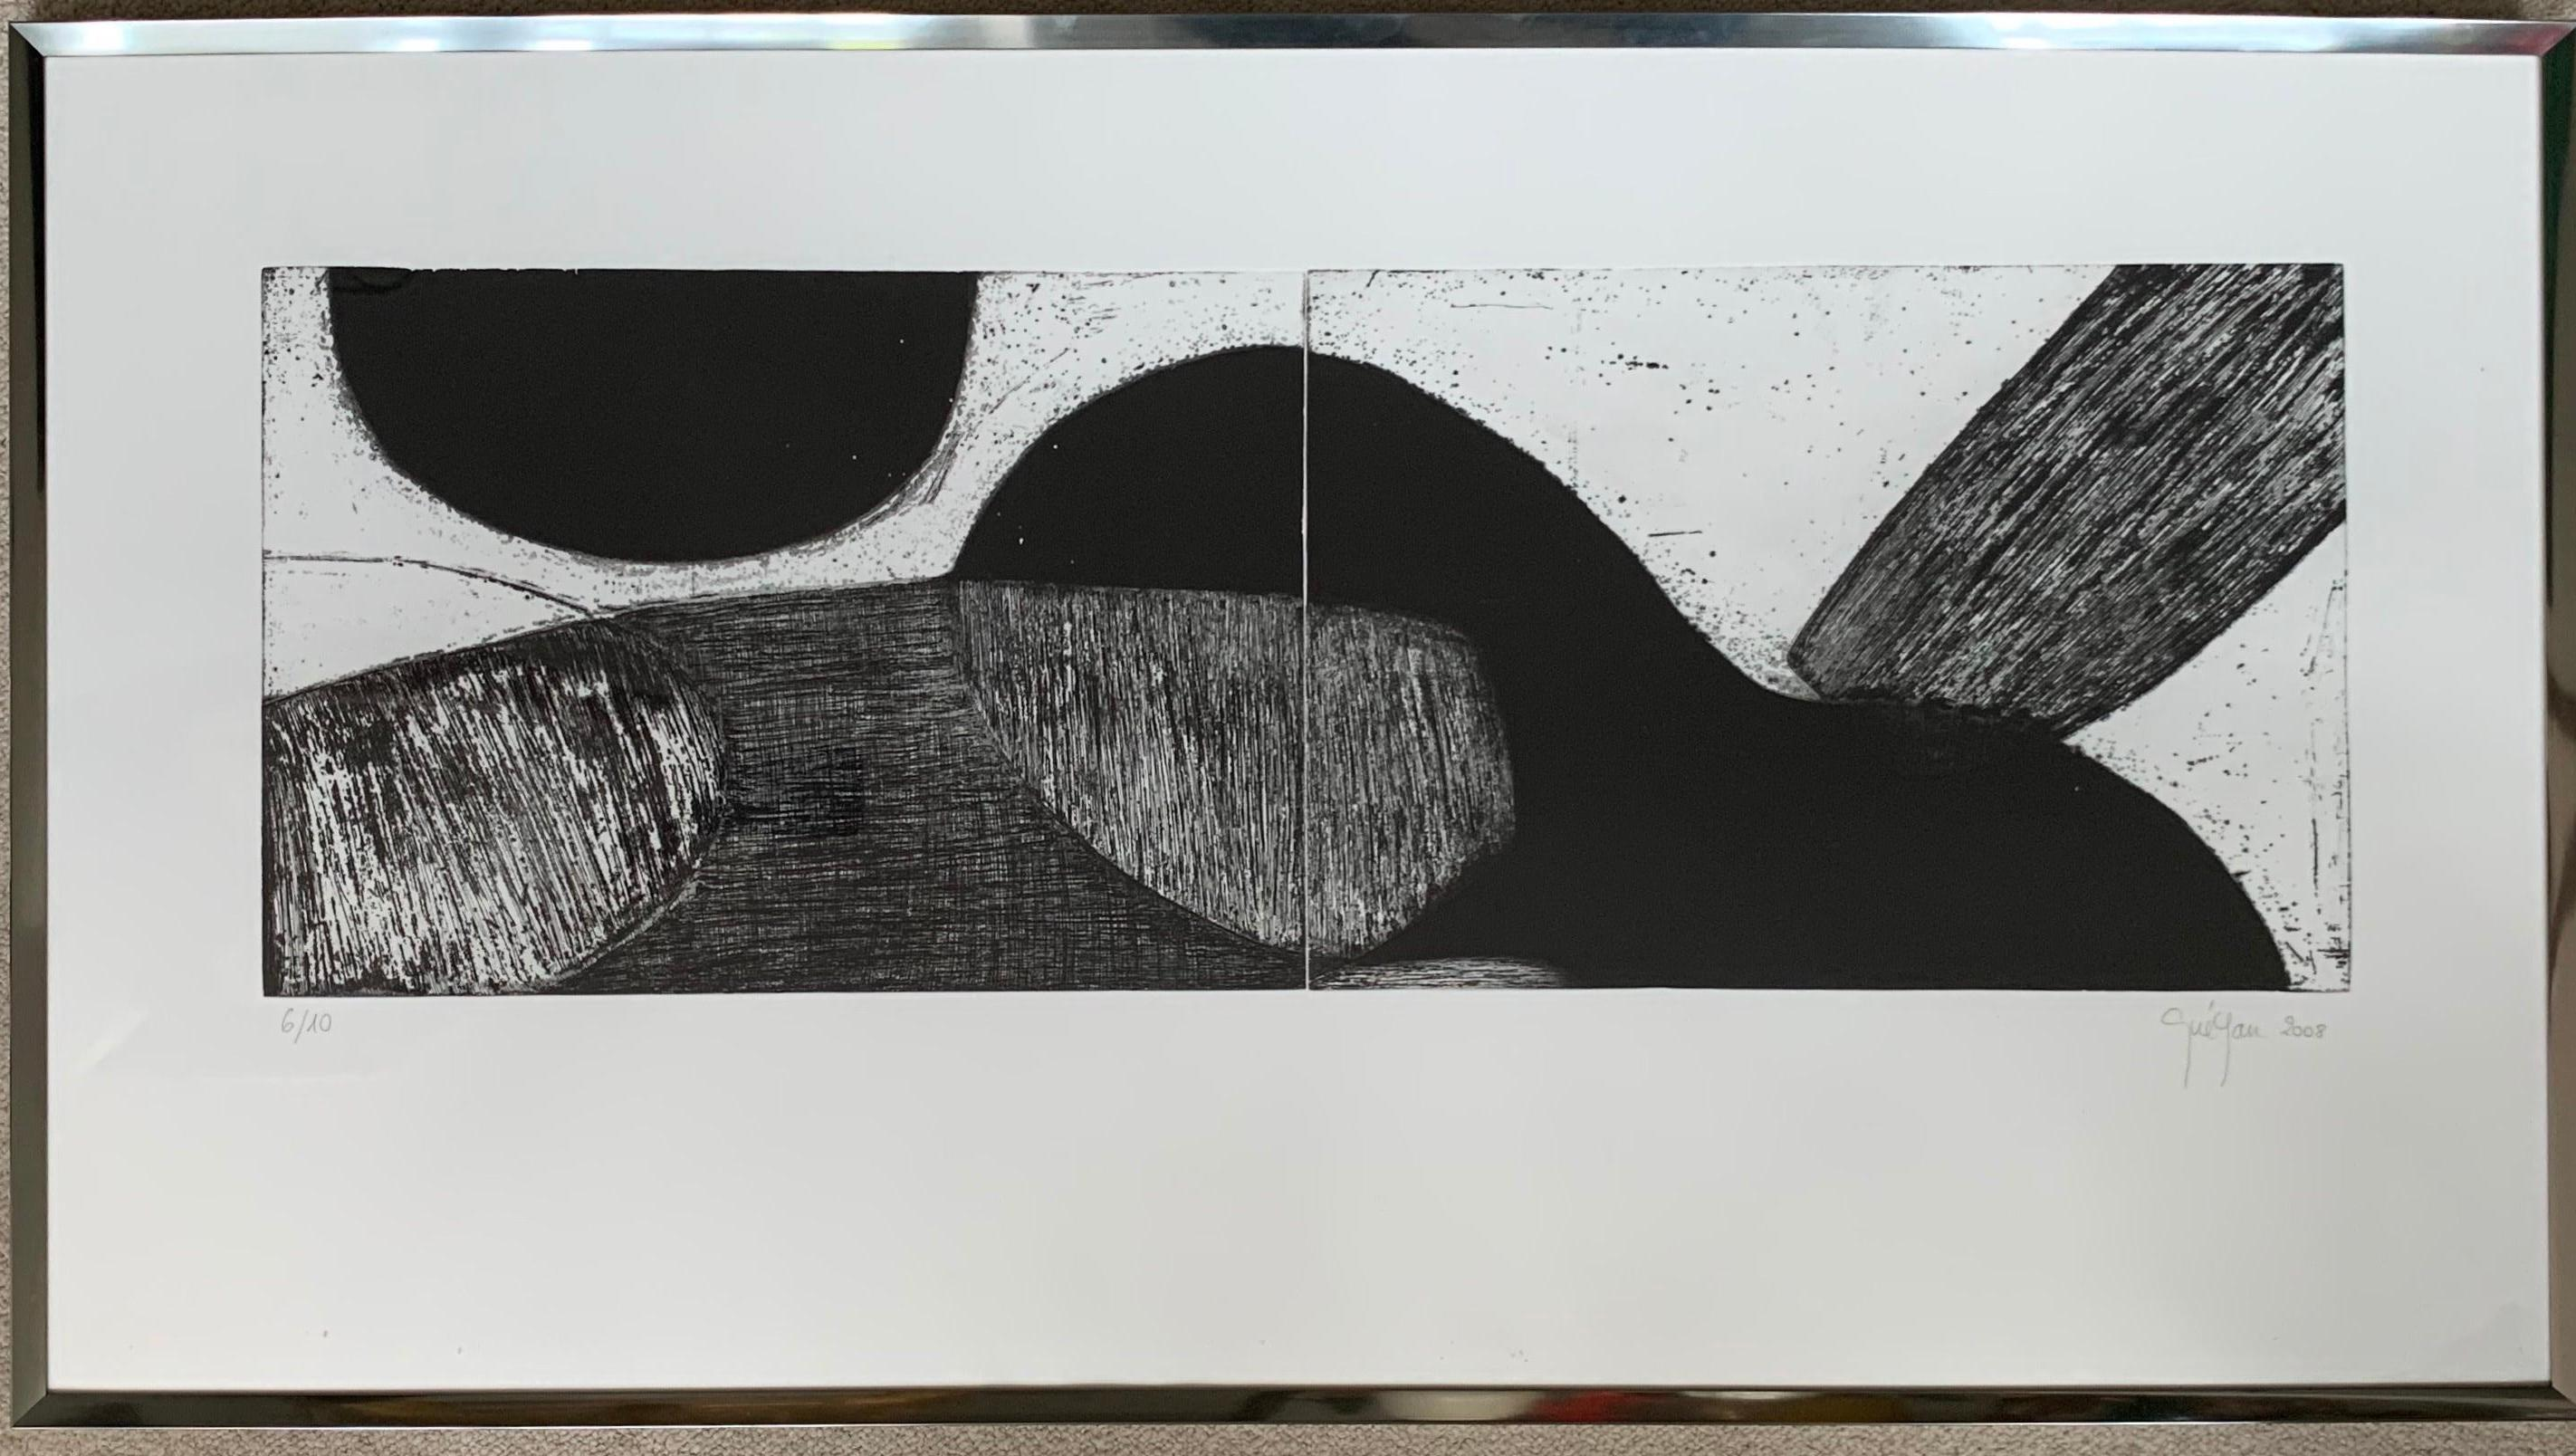 French Artist Gravure/Engraving, etching and Carborundum